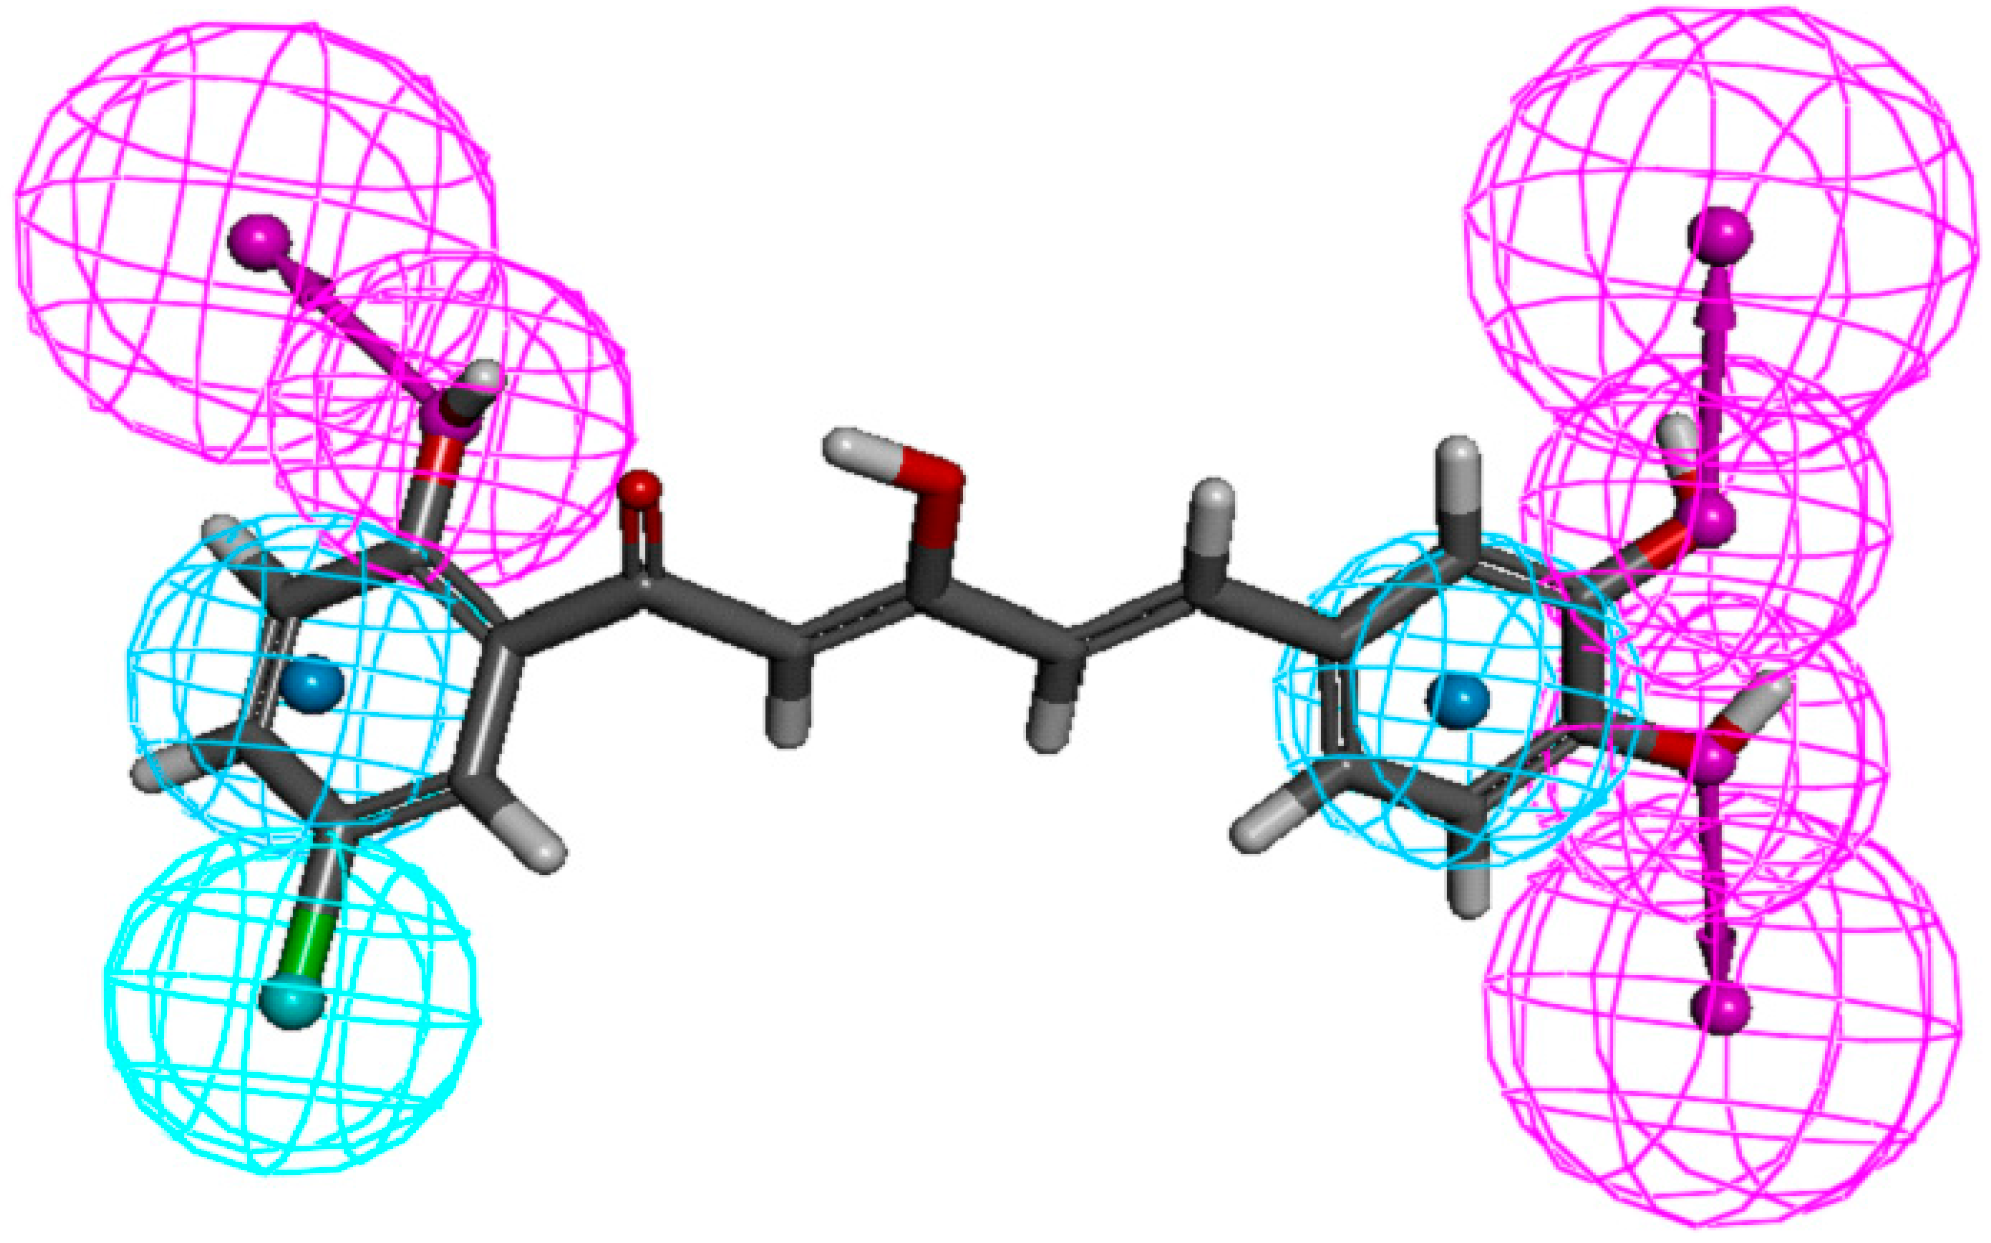 hybrid pharmacophores as anti inflammatory agents A novel class of dual pharmacology bronchodilators targeting both β(2)-adrenoceptor and pde4 was designed and synthesised by combining the pharmacophores of salmeterol and roflumilast or phthalazinone.